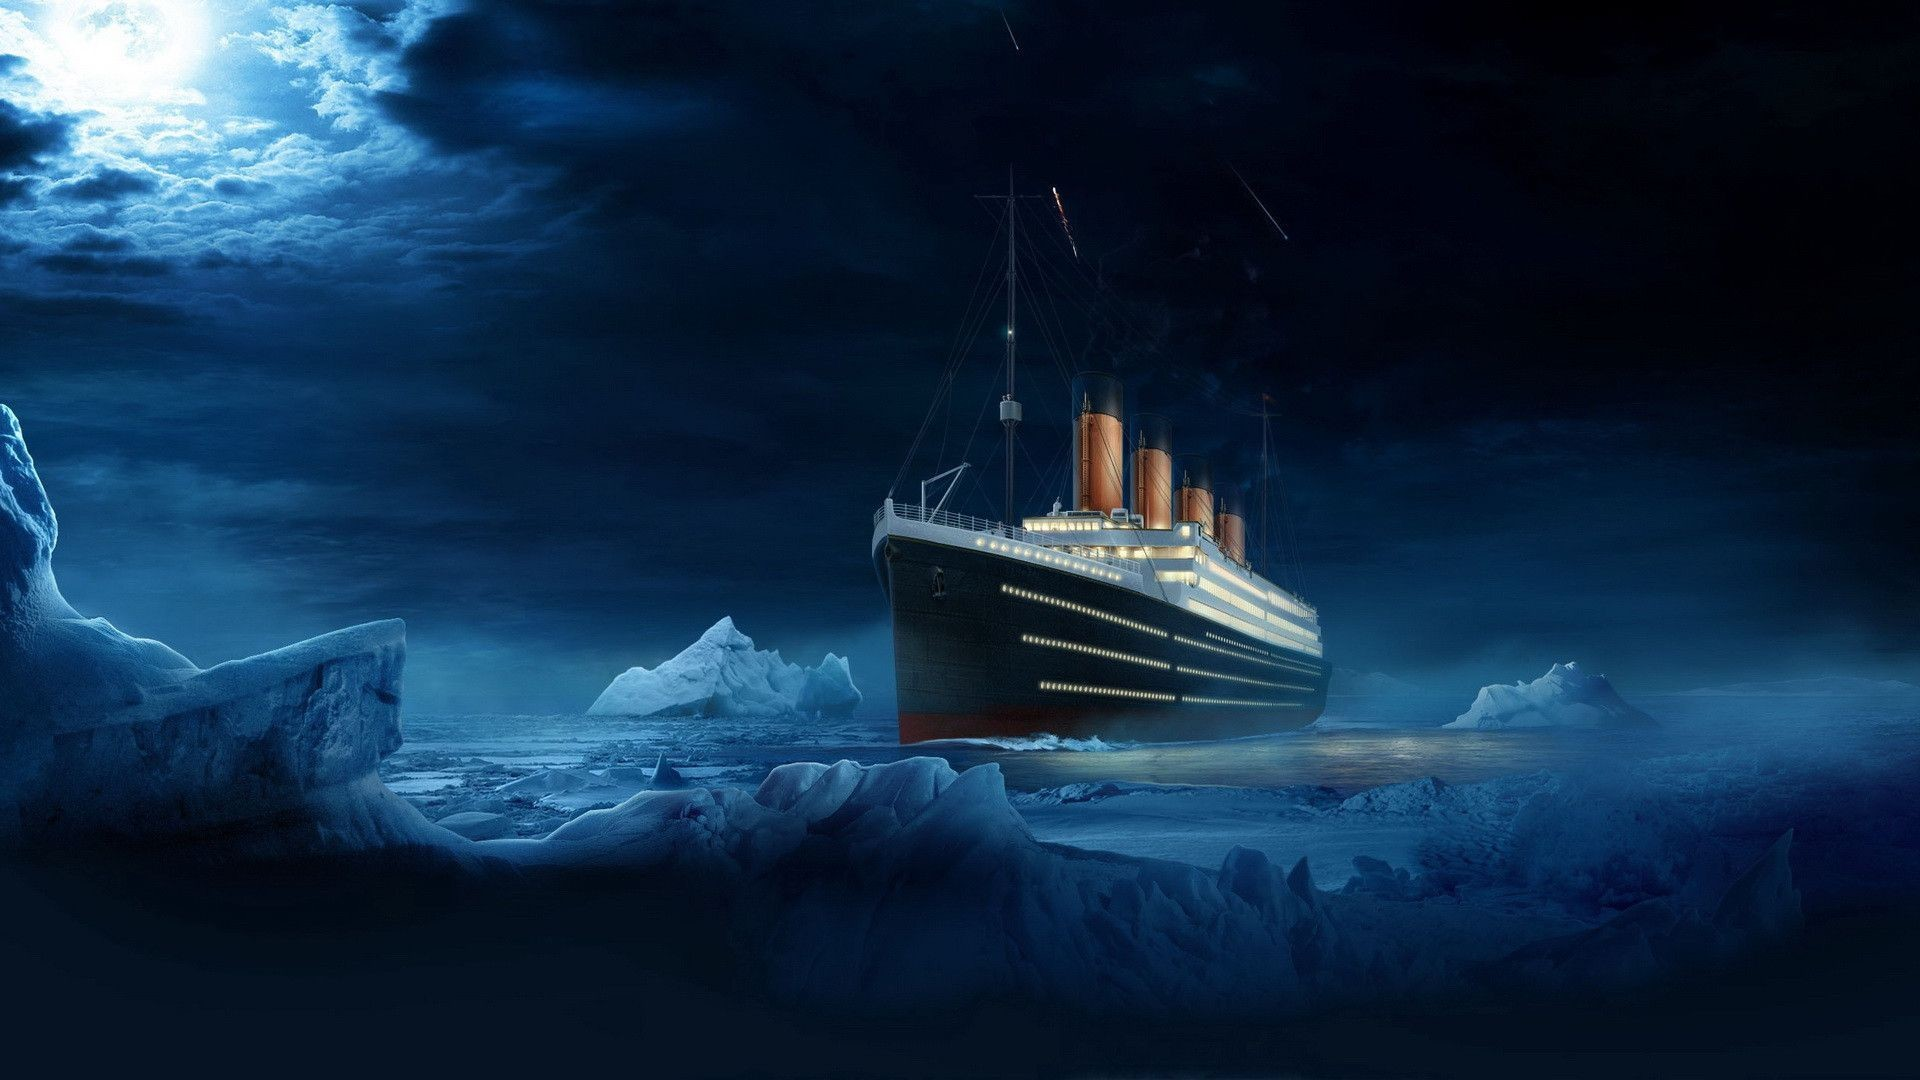 Wallpaper of titanic 65 images - Titanic hd wallpaper download ...